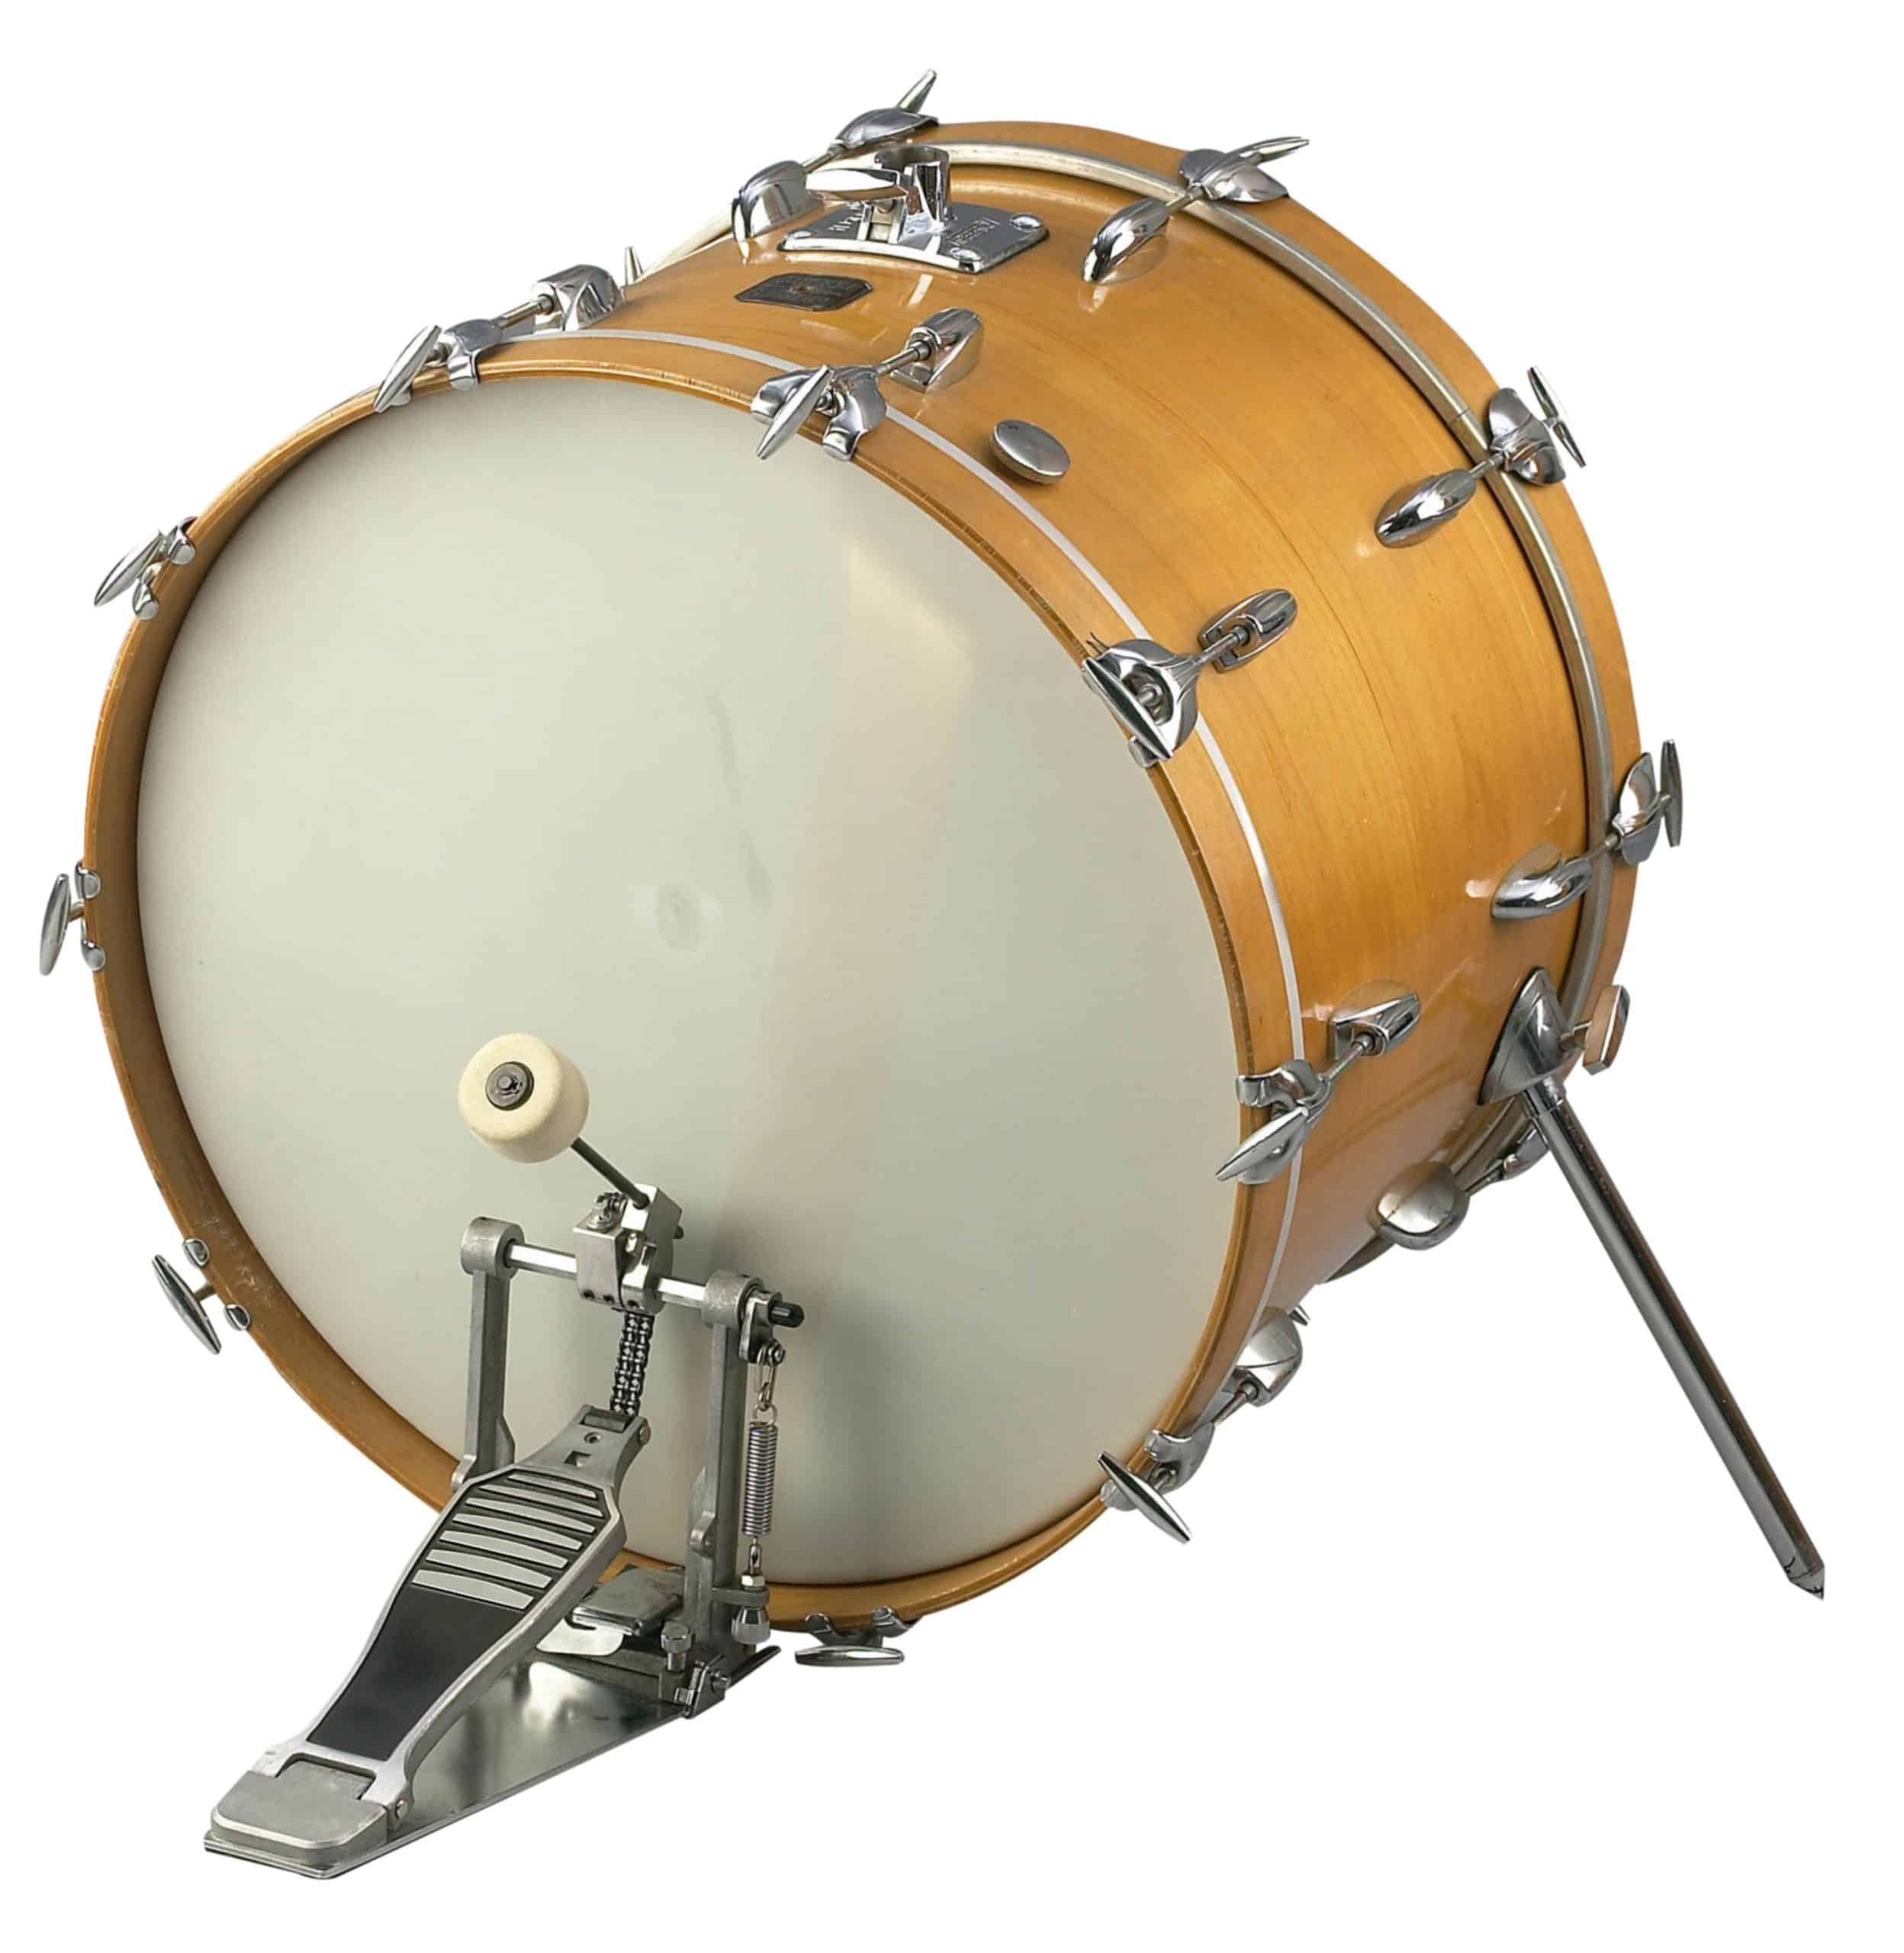 Example of a bass drum